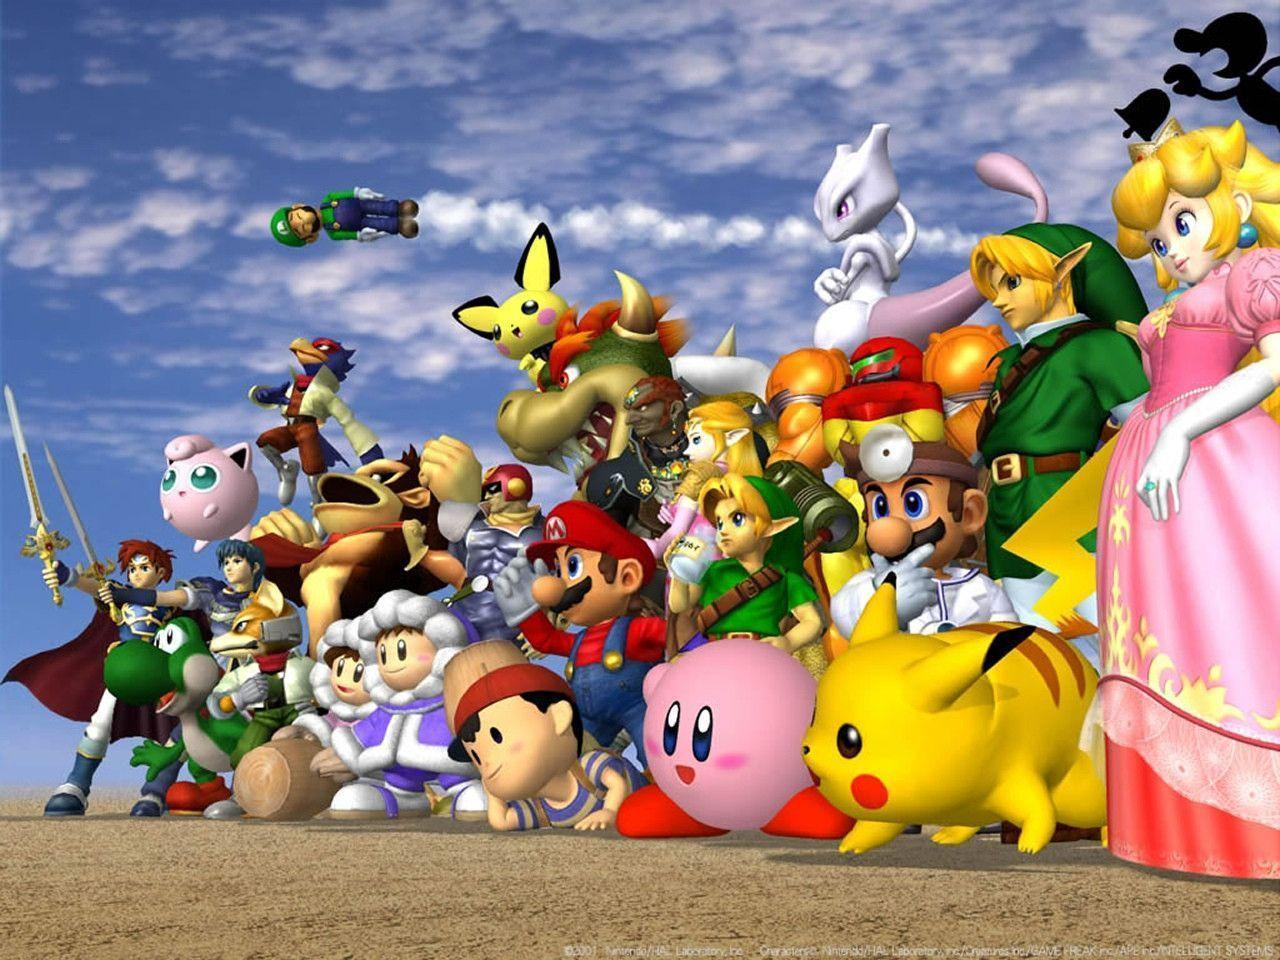 Super Smash Bros. Melee Wallpapers